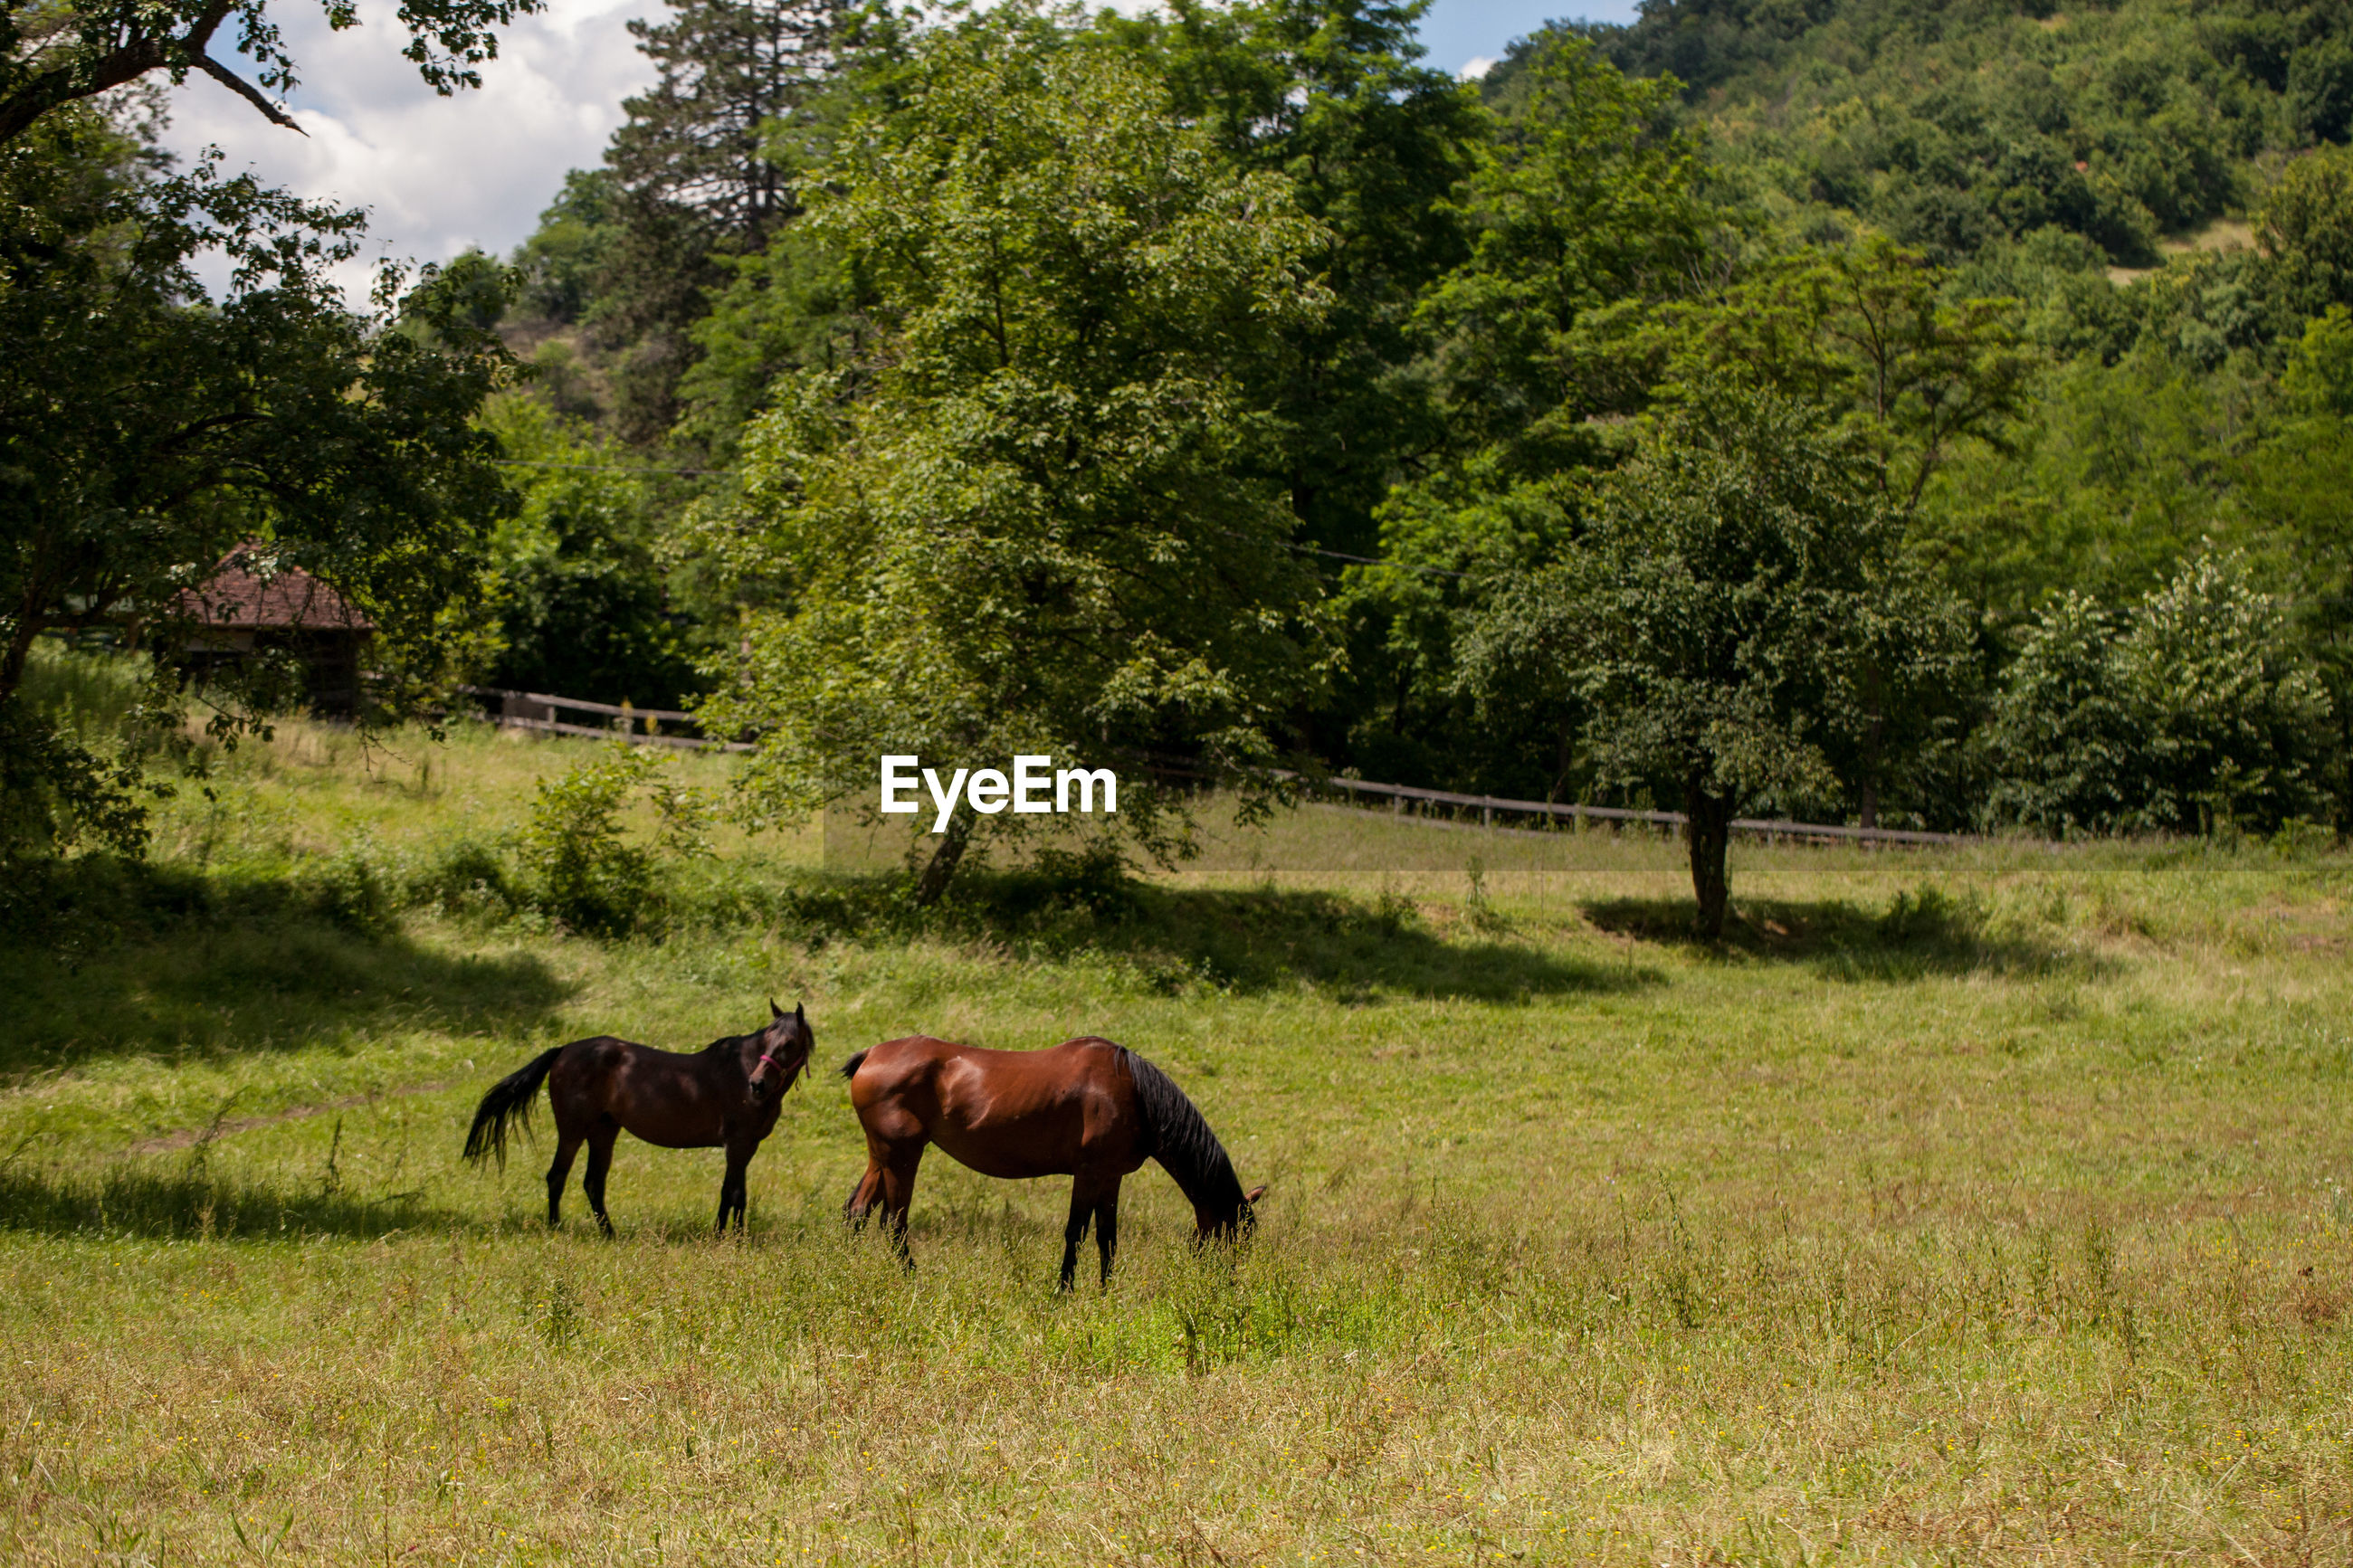 Side view of horses on grassy field against trees